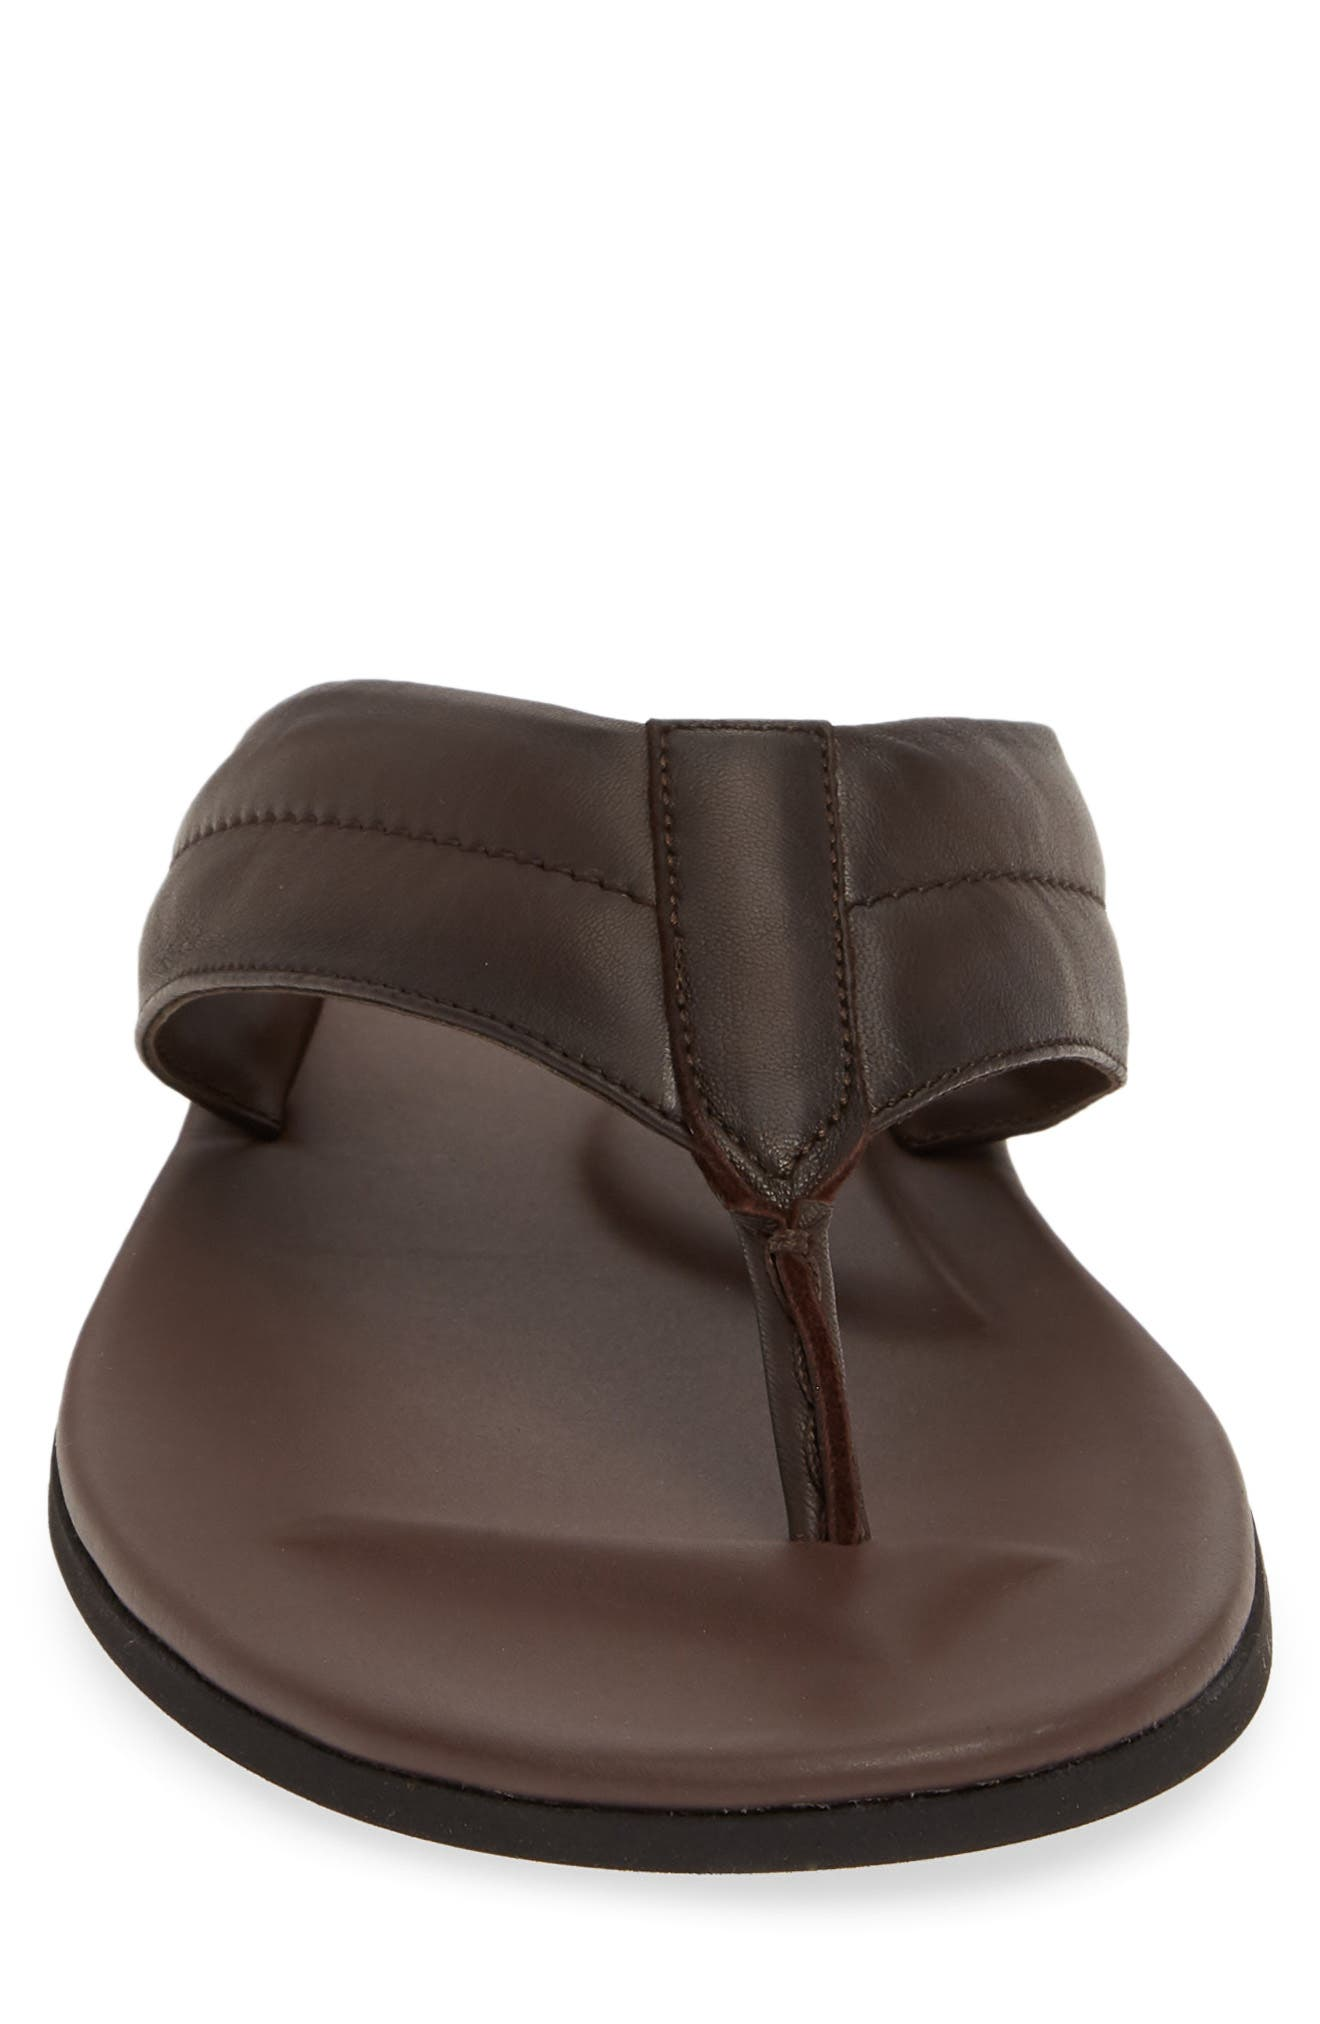 TO BOOT NEW YORK, Grande Flip Flop, Alternate thumbnail 4, color, BROWN LEATHER